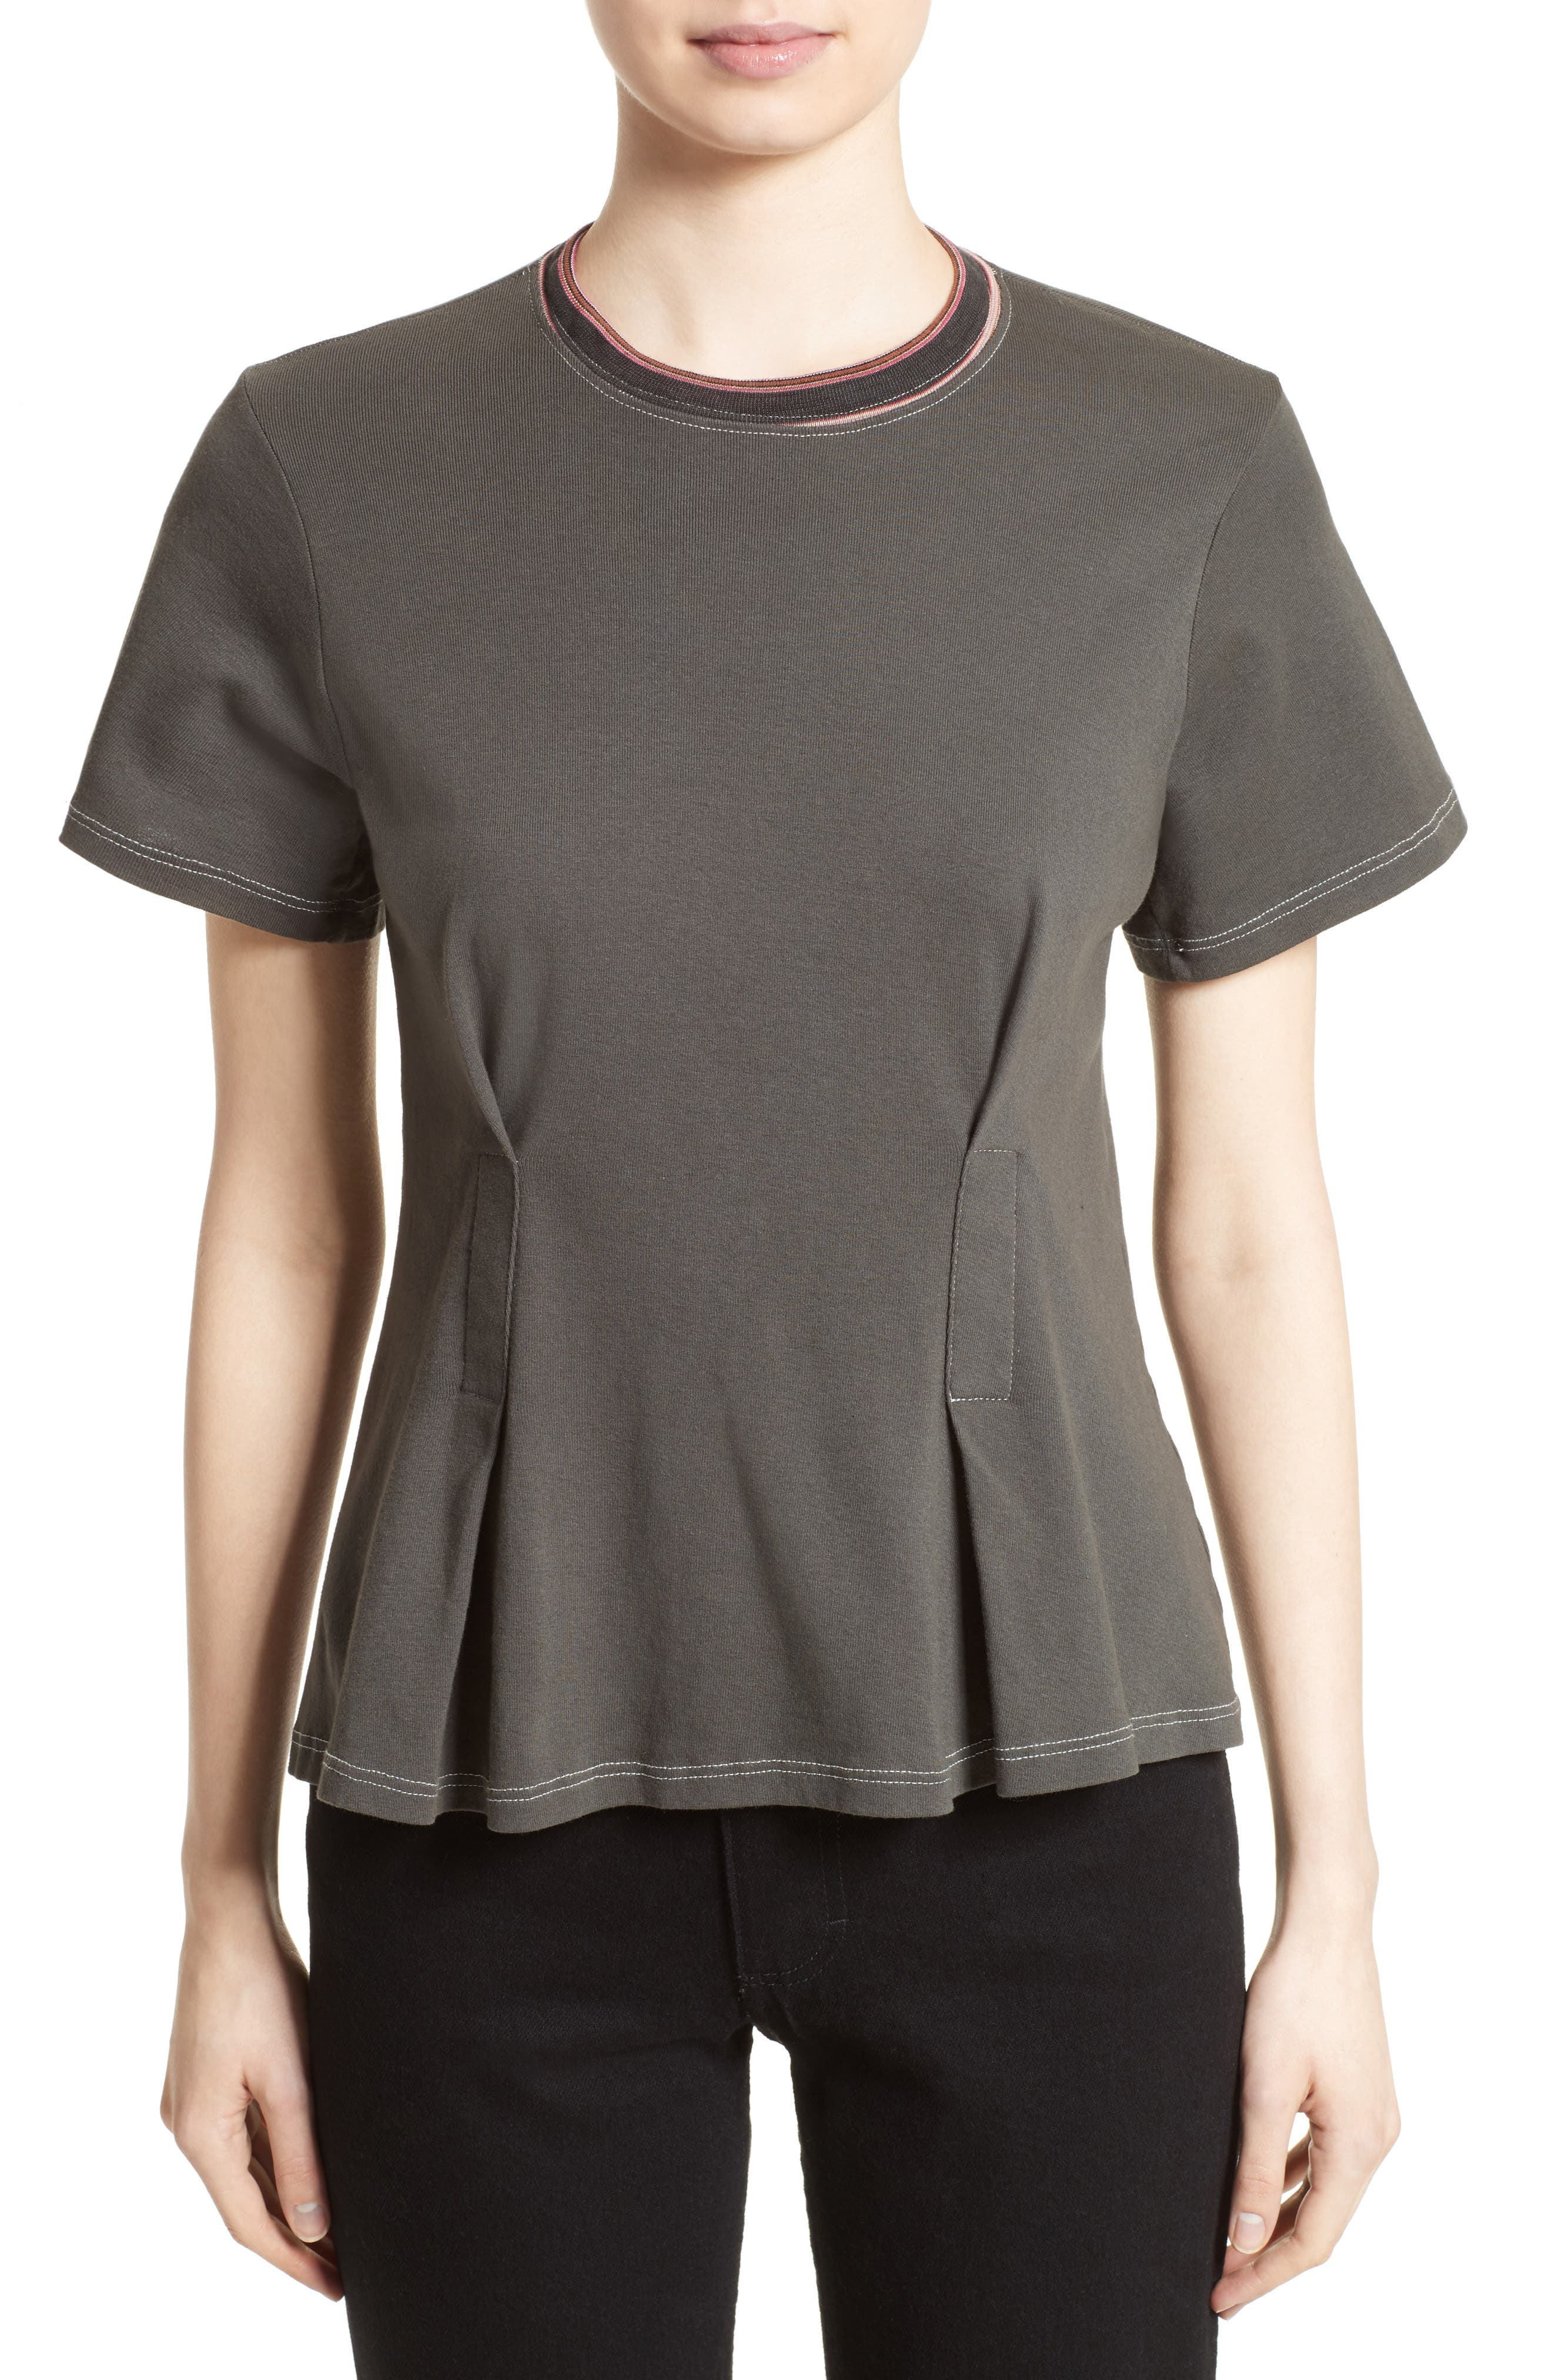 Top Stitch Tee,                         Main,                         color, Off Black